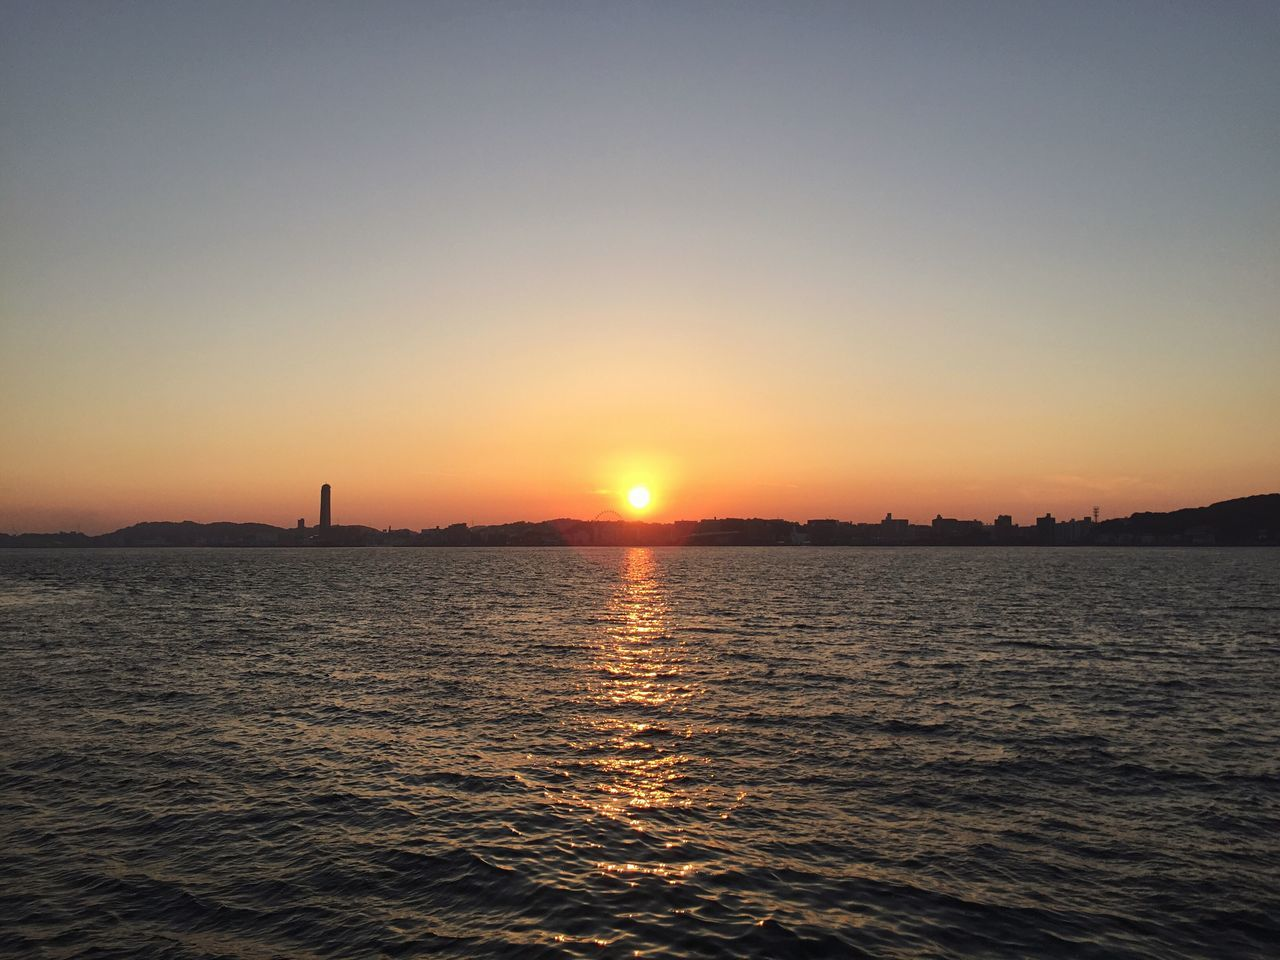 Sunset across the straits. Moji Japan KYUSHU Sunset Sun Beauty In Nature Scenics Orange Color Nature Sea Tranquil Scene Tranquility Silhouette Idyllic Water Sky No People Outdoors Sunlight Waterfront Clear Sky